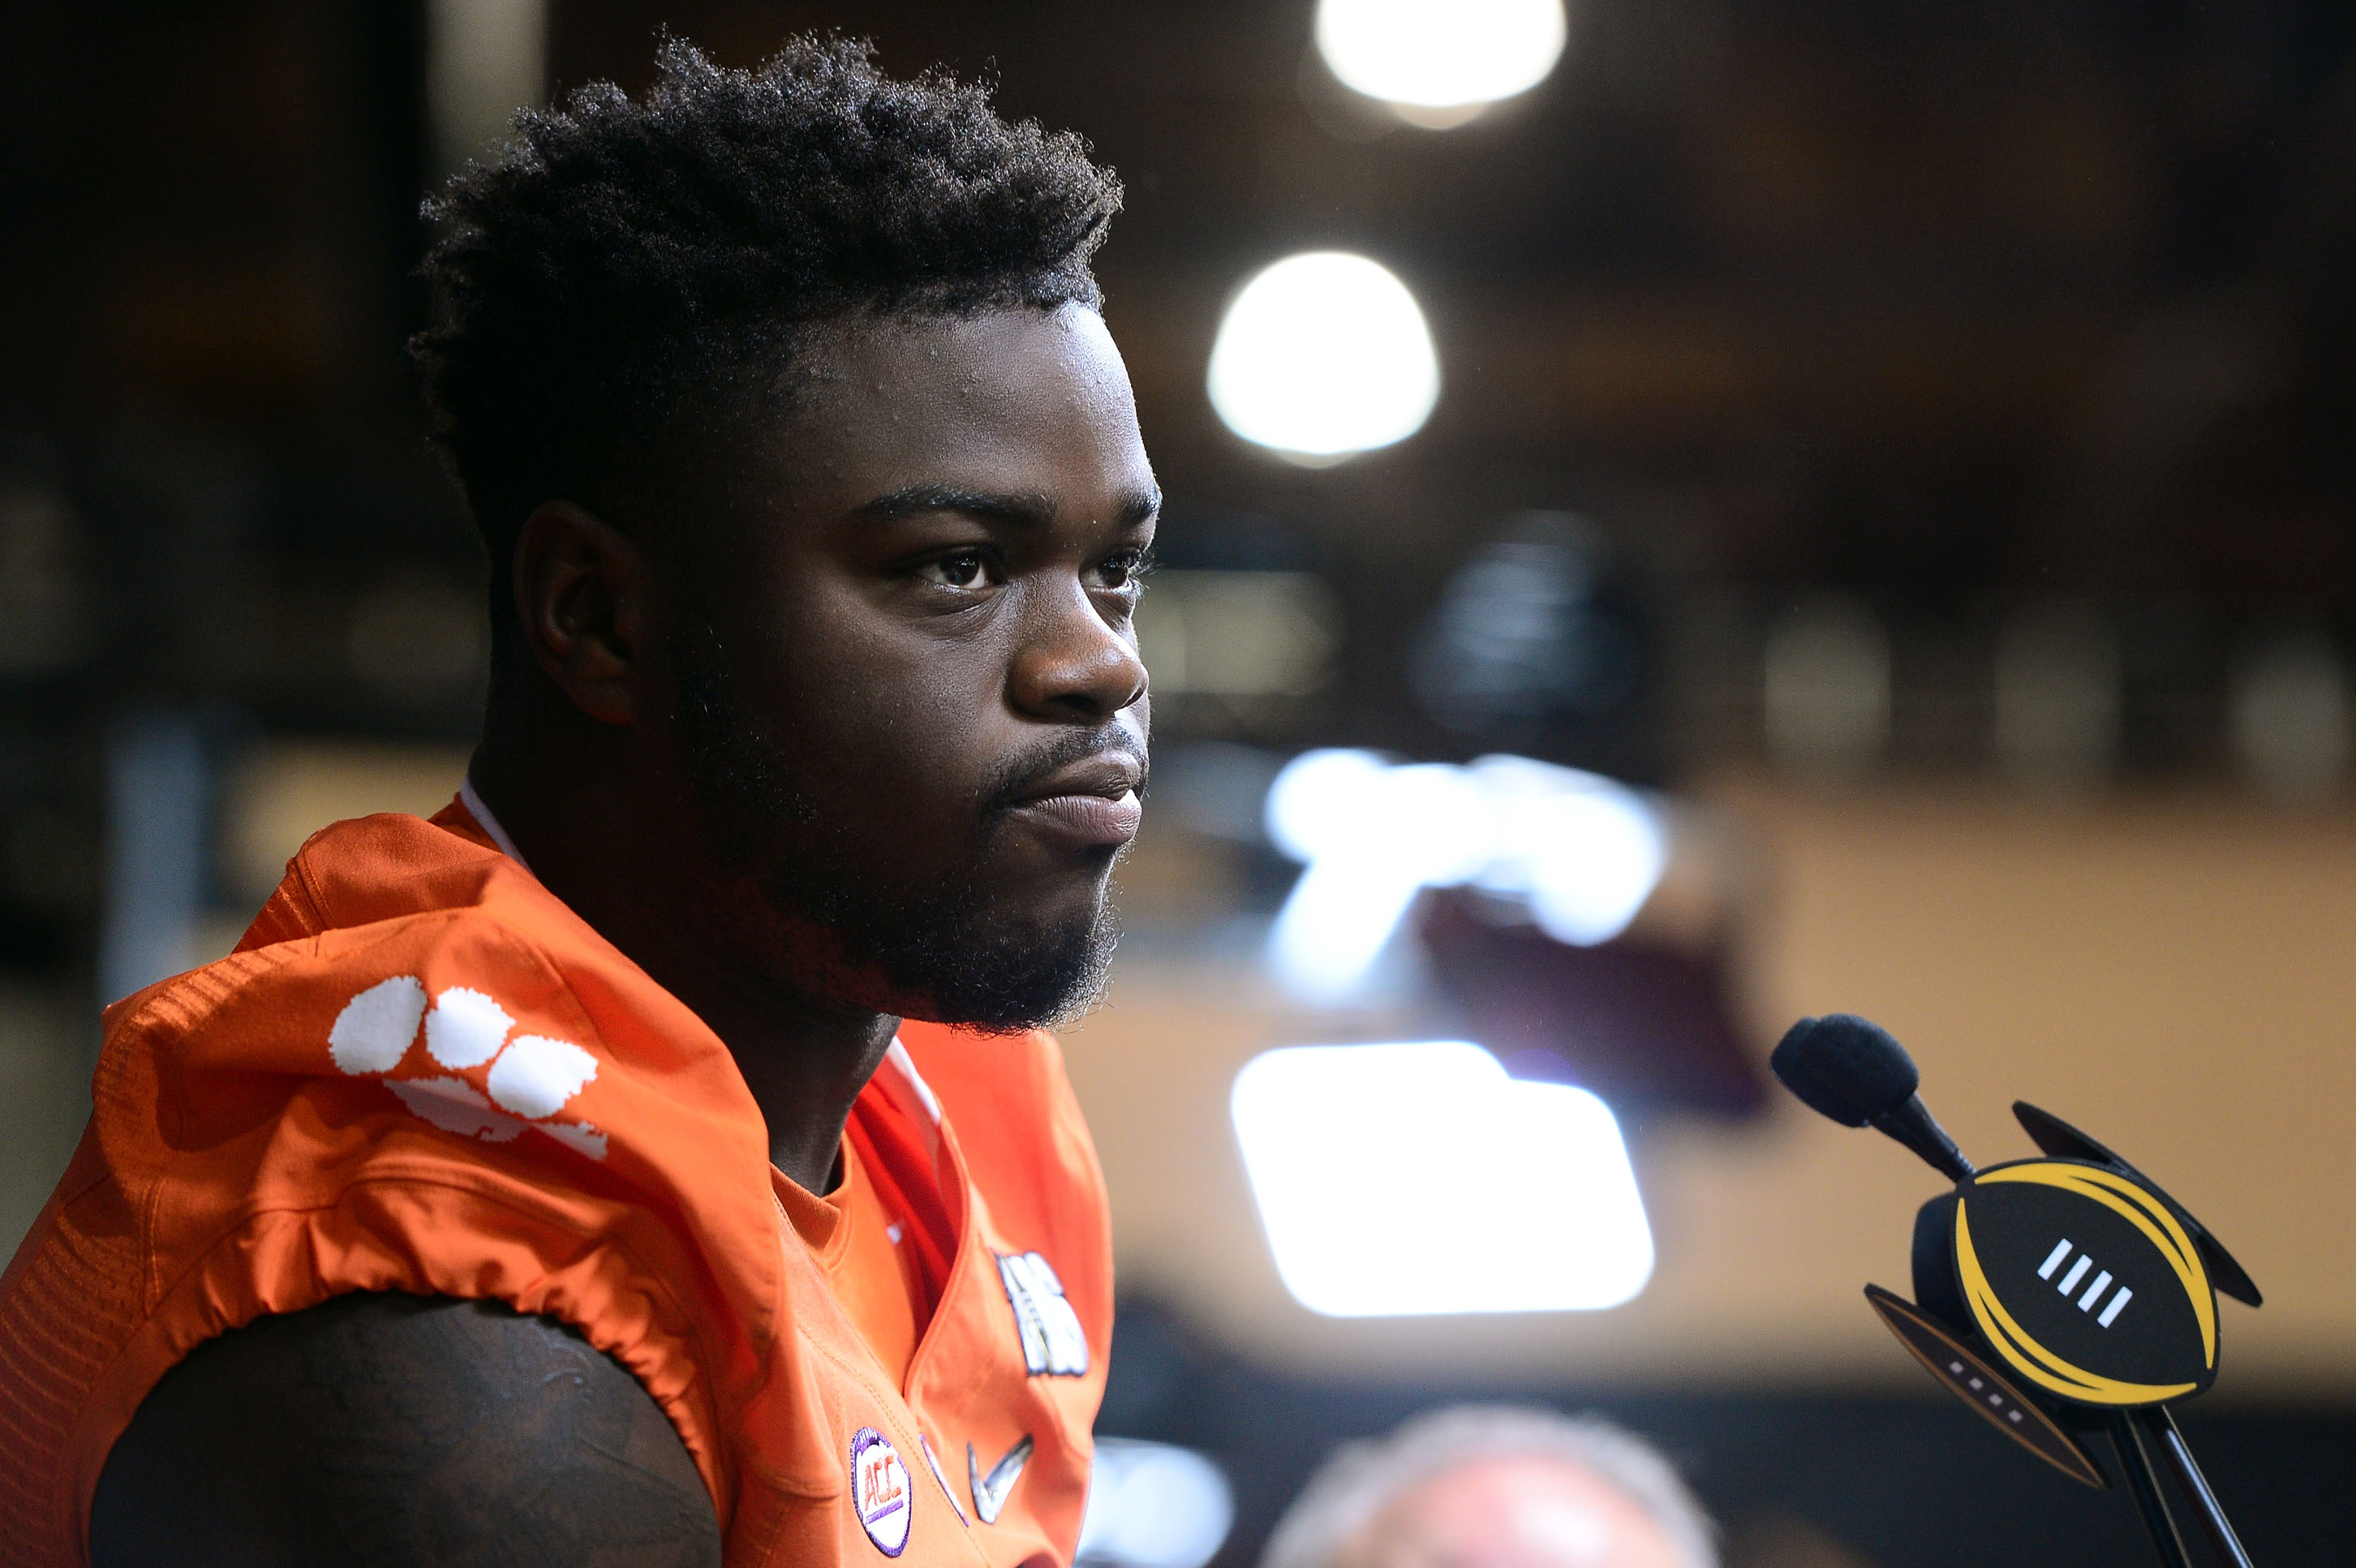 Shaq Lawson met the media via conference call soon after being drafted by the Buffalo Bills. This photograph is from interviews he did in advance of the College Football Playoff National Championship Game in January. (Getty Images)